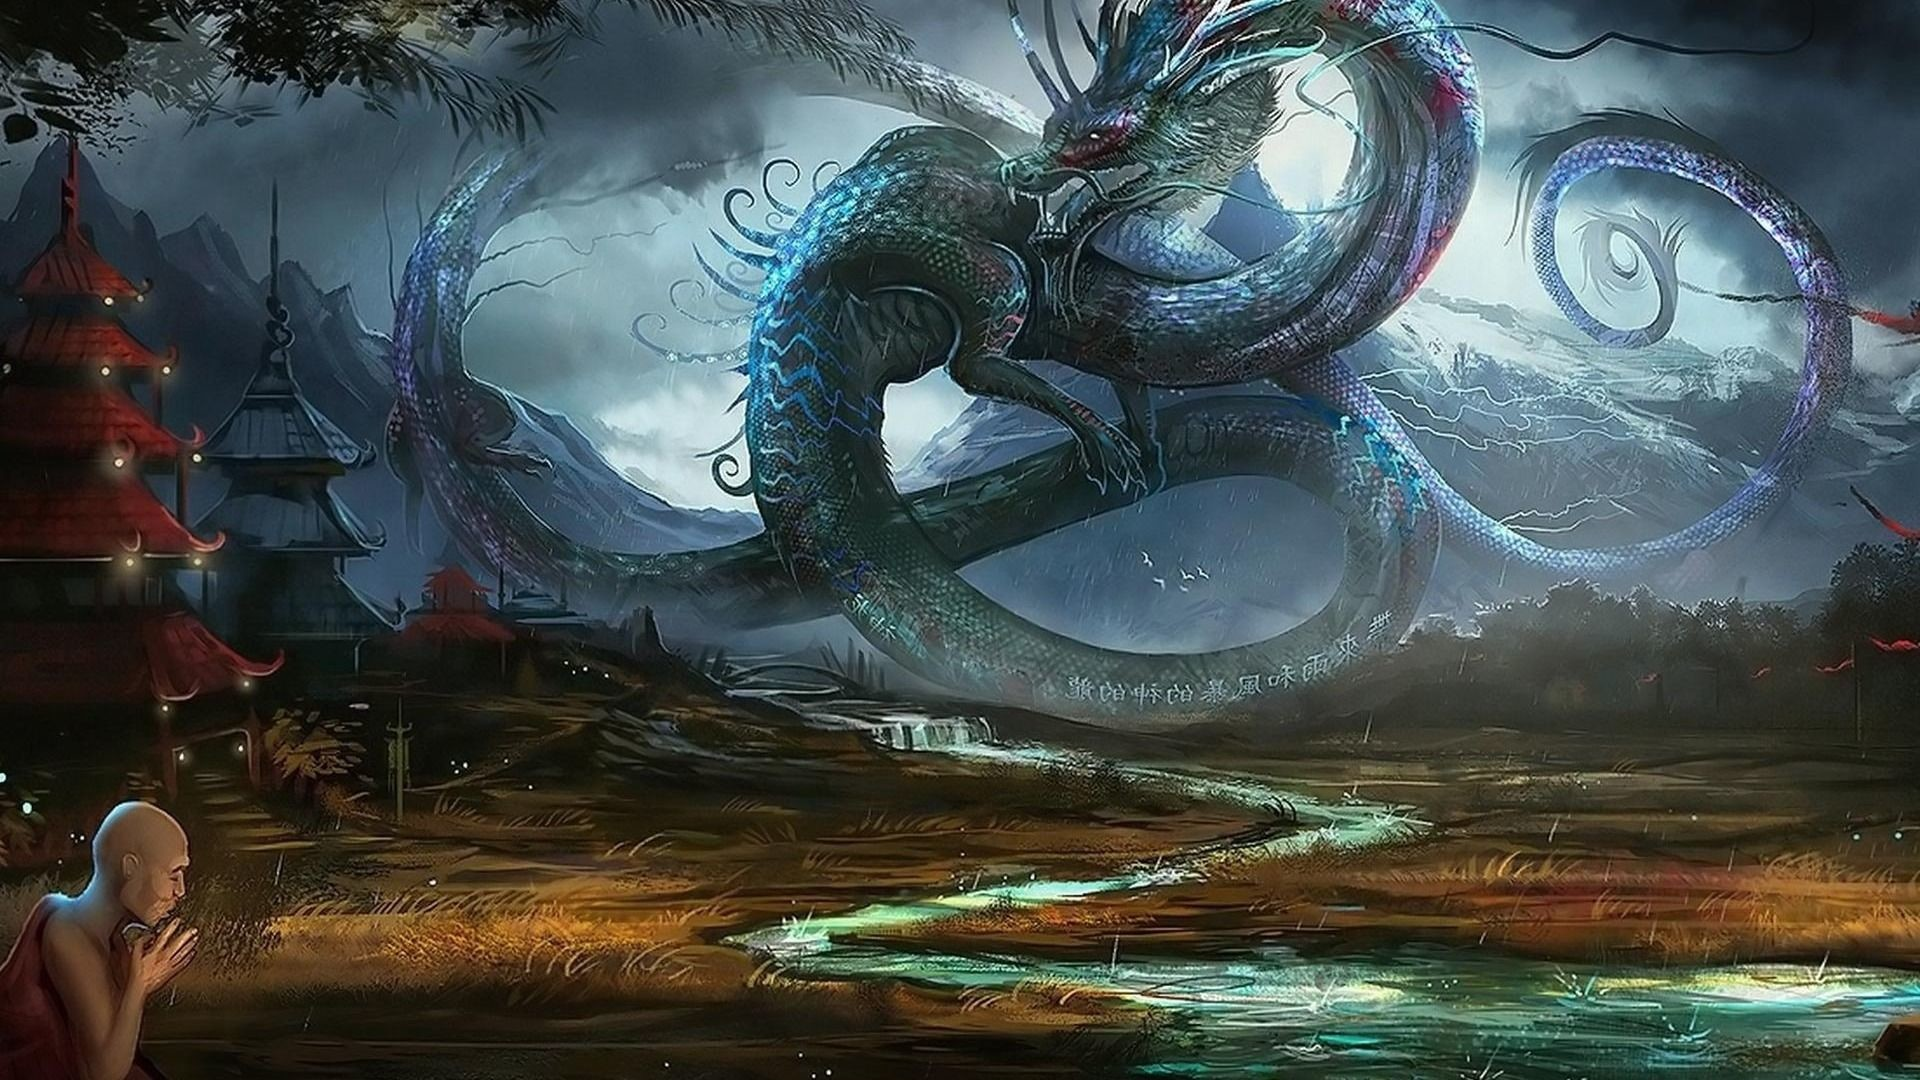 water dragon wallpaper 76 images